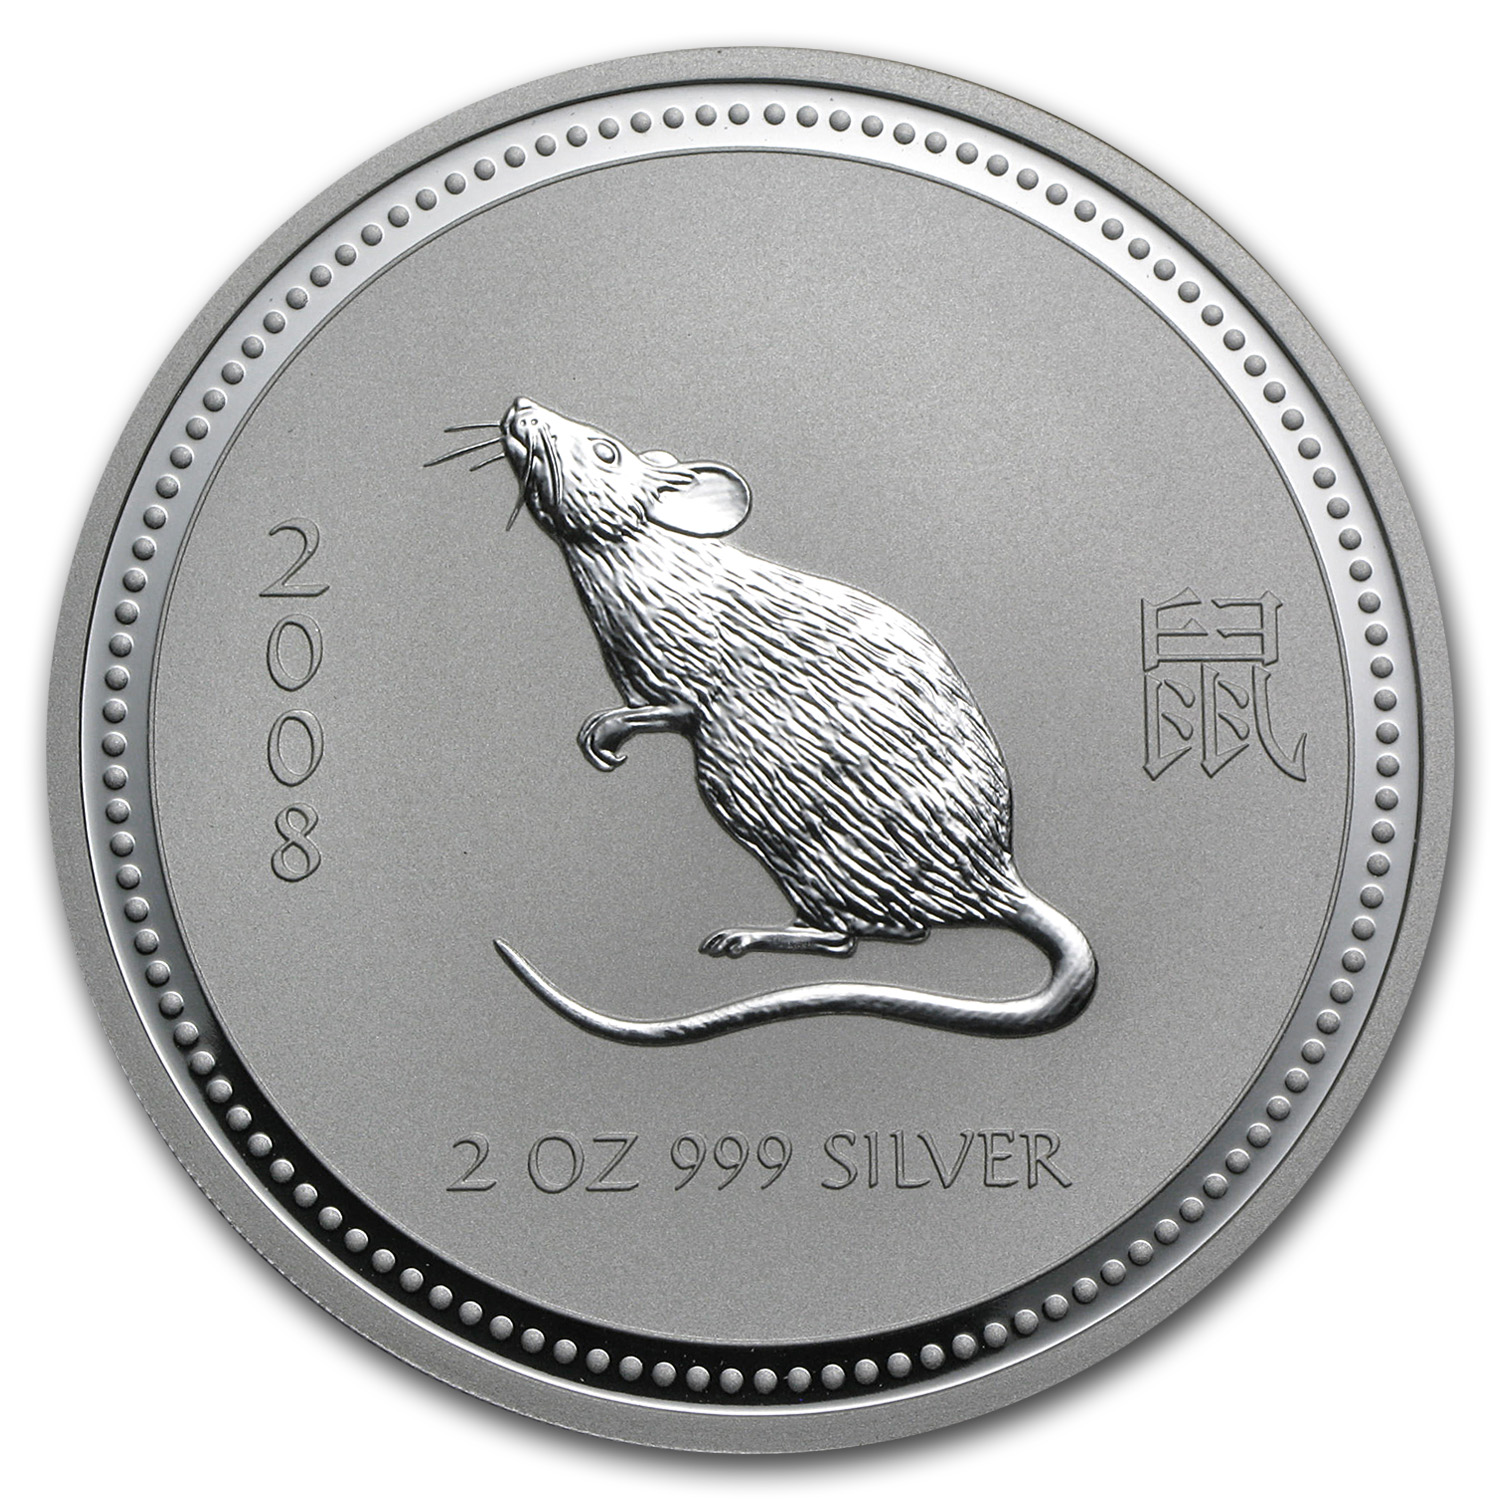 2008 Australia 2 oz Silver Year of the Mouse BU (Series I)